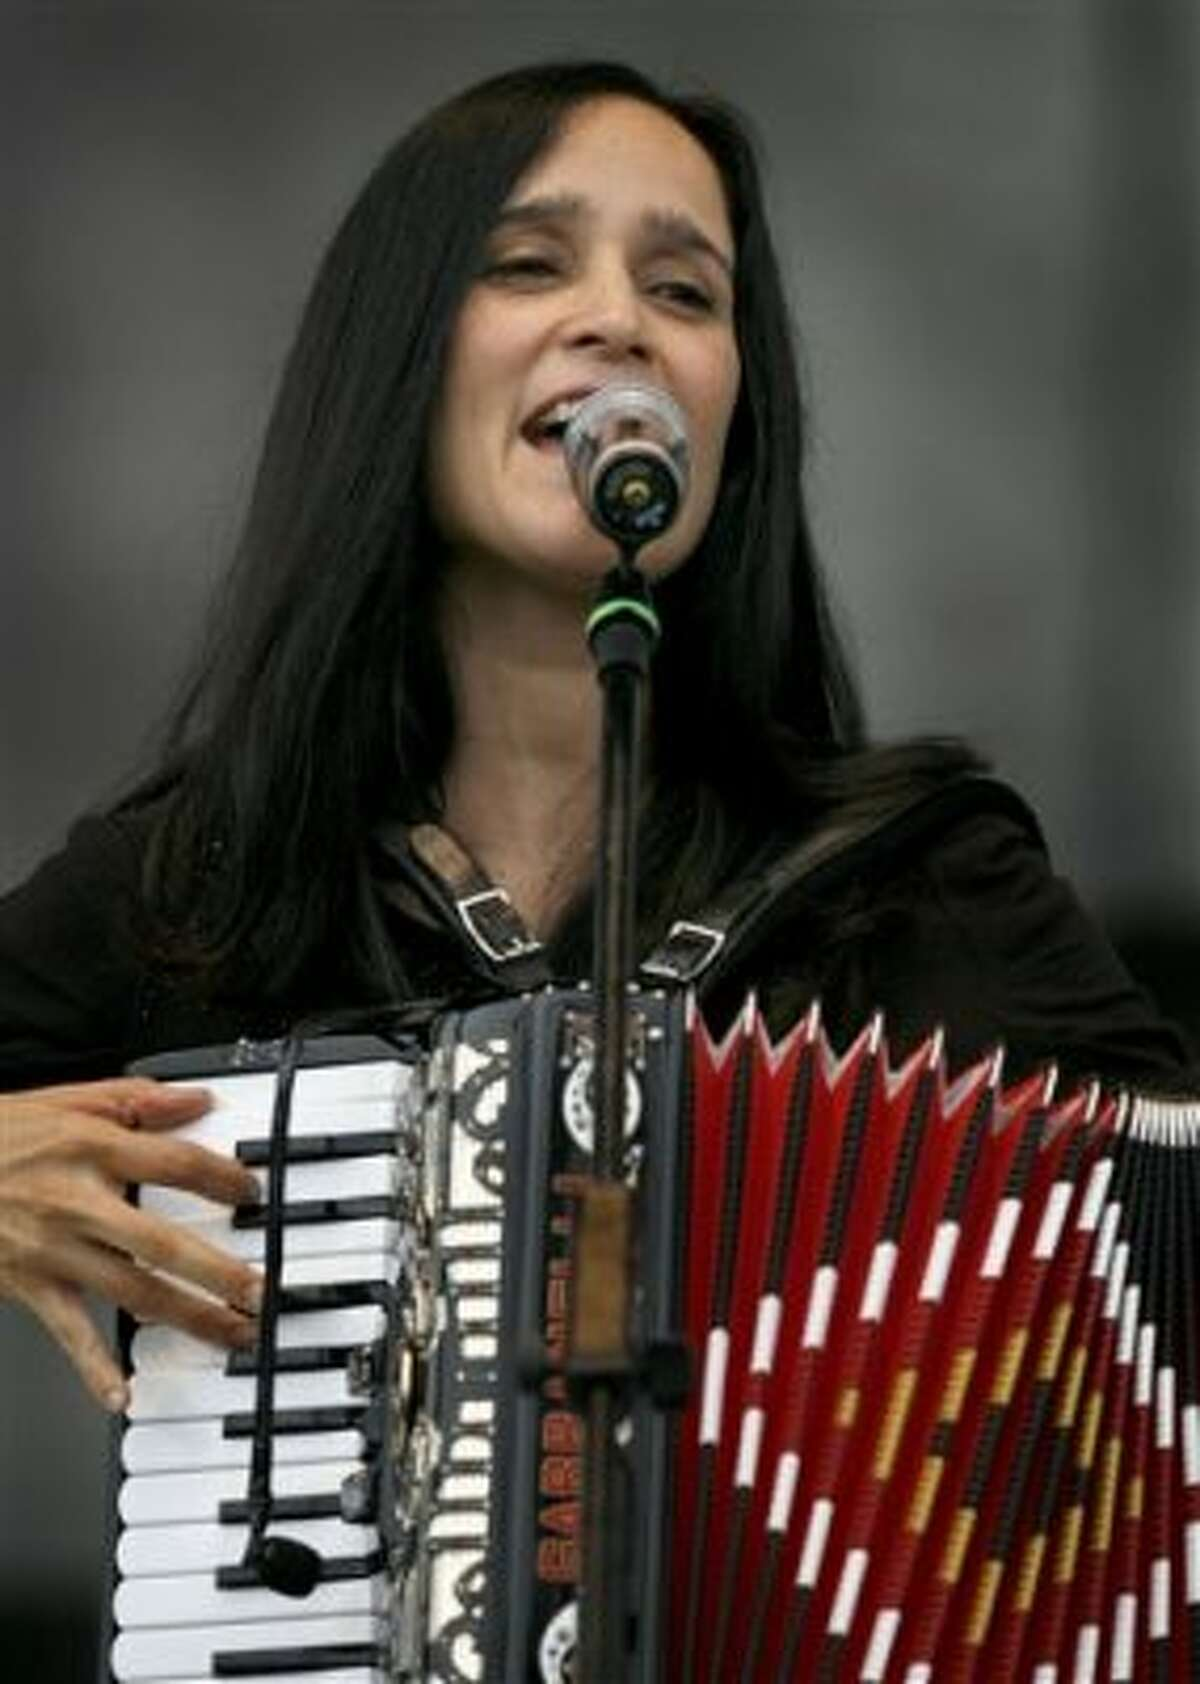 """Mexican musician Julieta Venegas performs during a music festival in support of the student movement #YoSoy132, or """"I am 132"""" in Mexico City, Saturday June 16, 2012. #YoSoy132 is the name of a university movement that rejects the possible return of the old ruling Institutional Revolutionary Party (PRI) ahead of Mexico's July 1 presidential election. (AP Photo/Marco Ugarte) (AP)"""